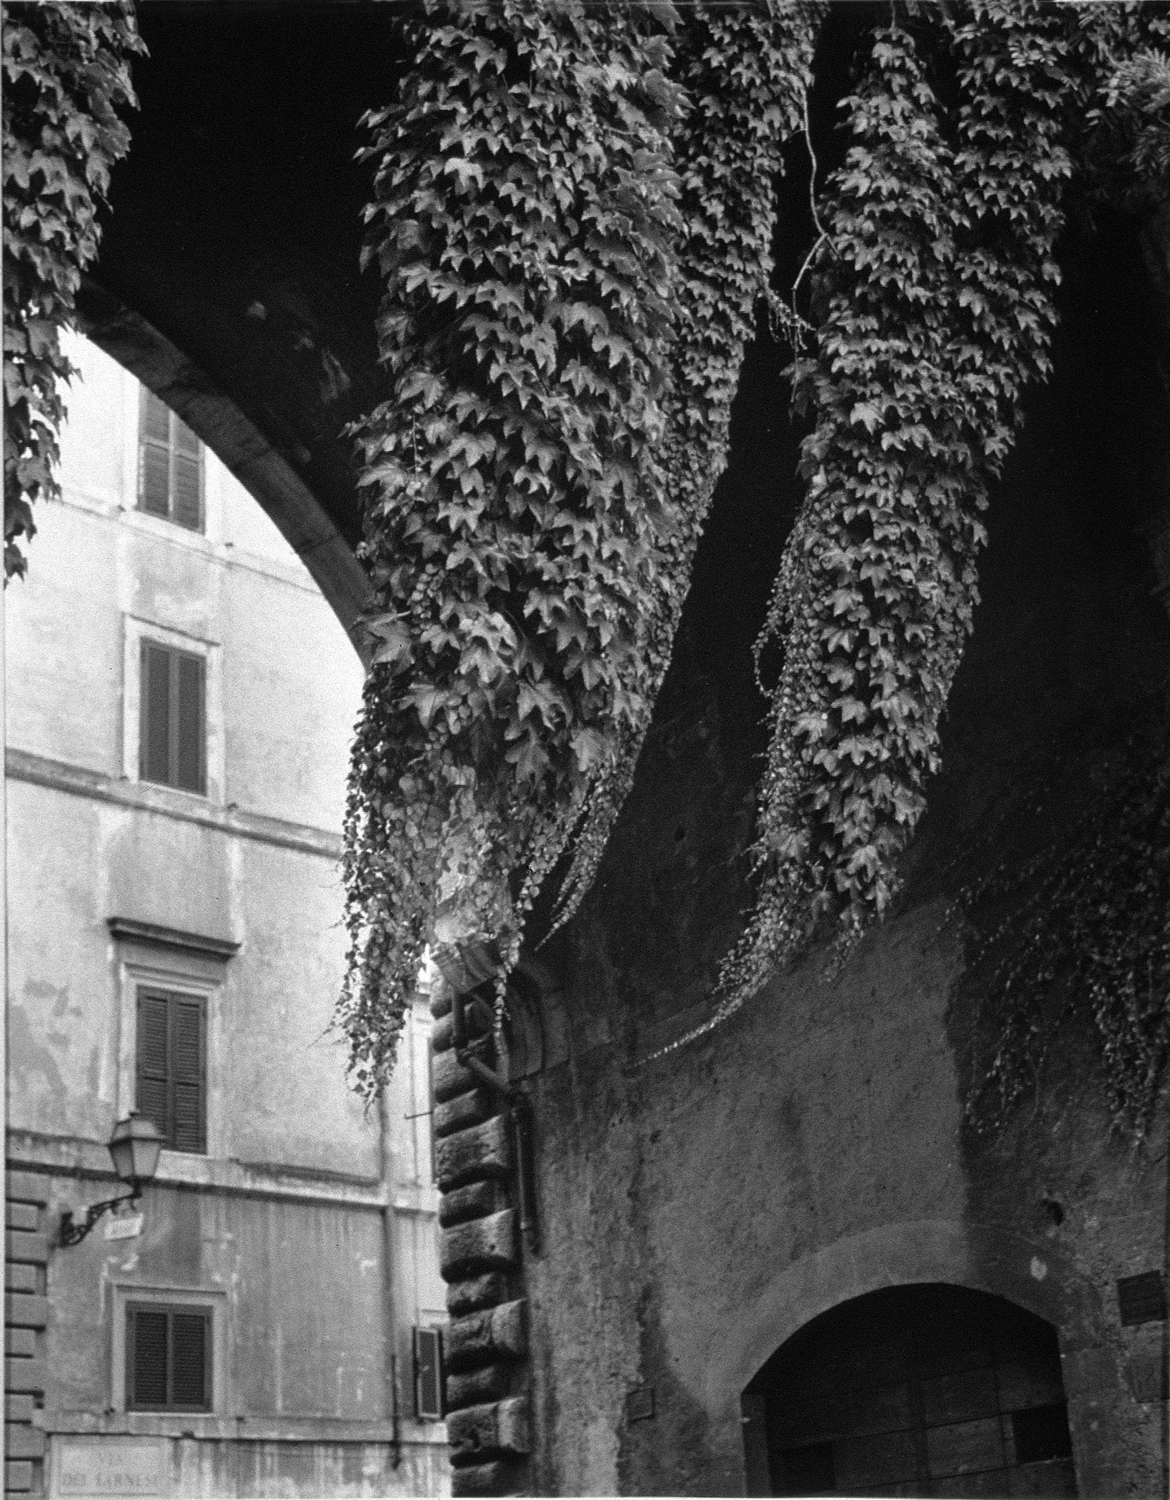 Rome, Via Guilia, Ivy. jpg